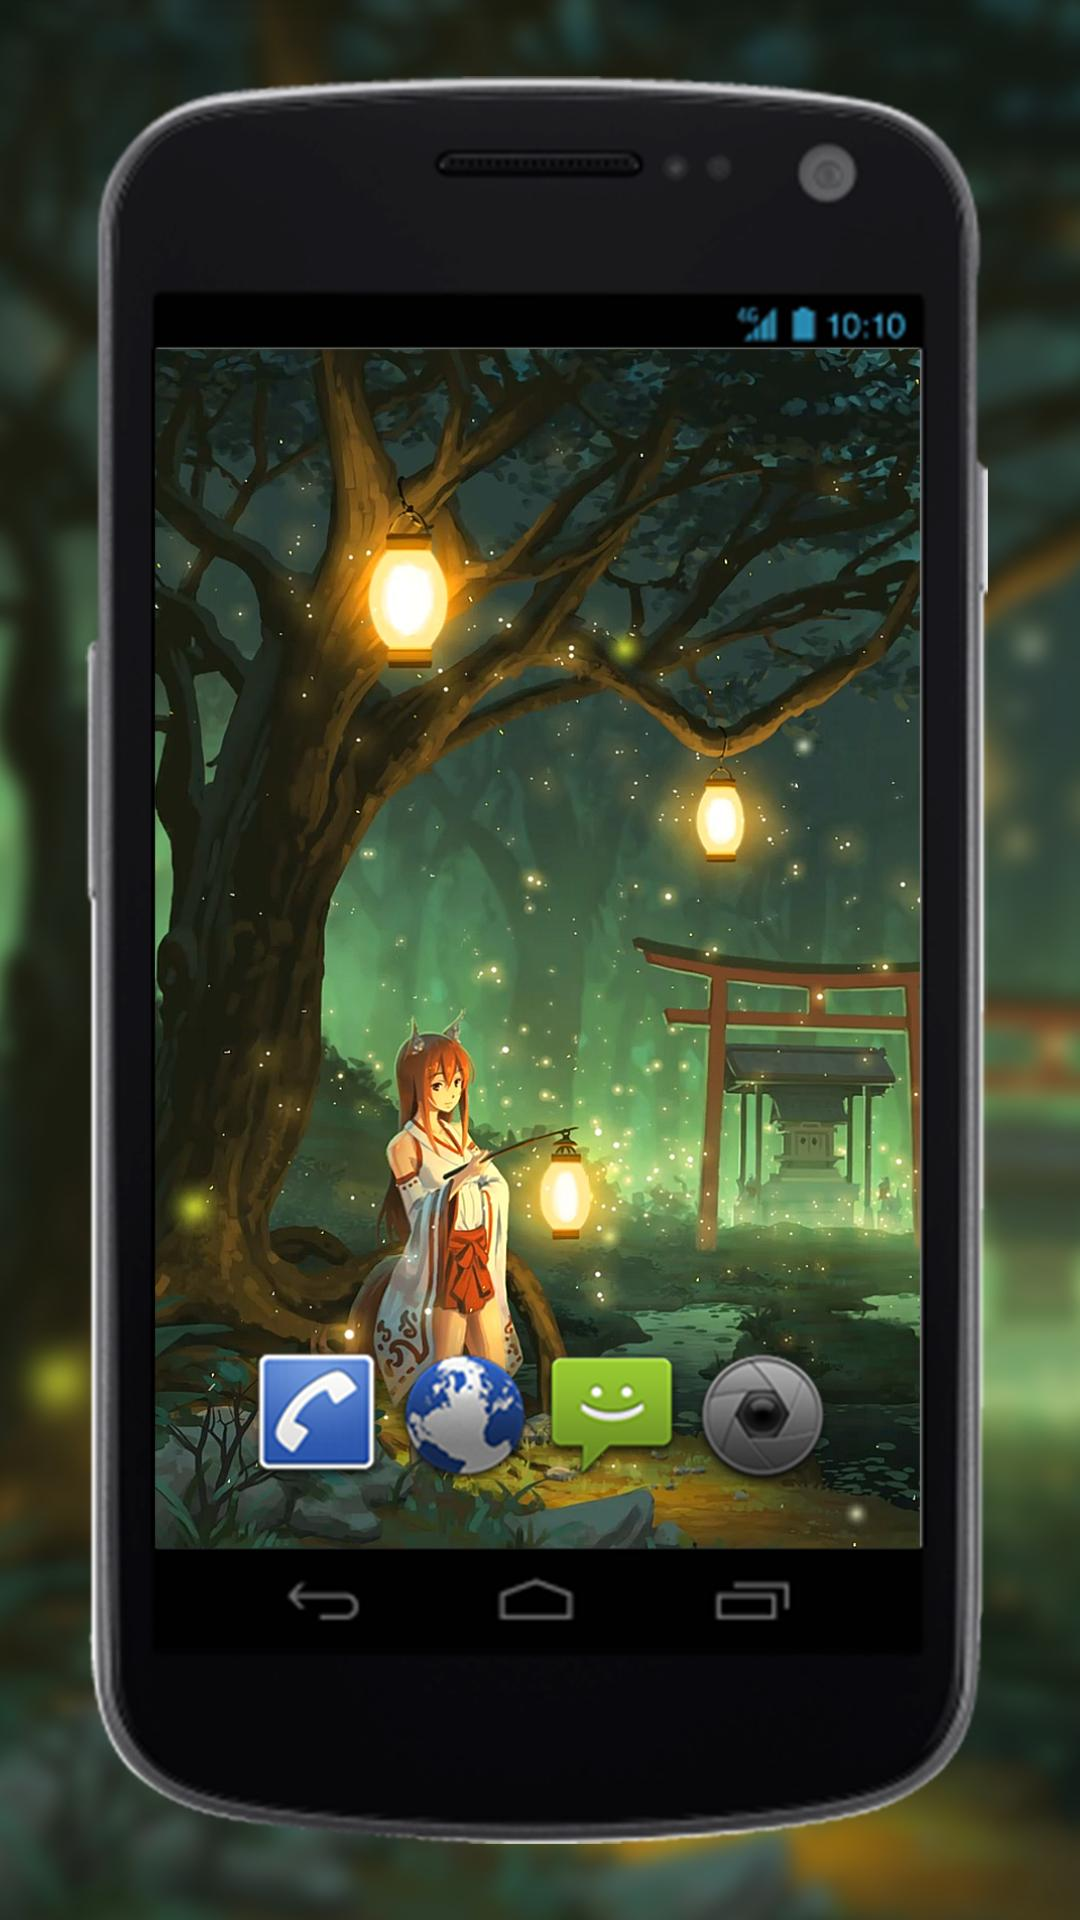 Anime Fan Wallpaper Of Miko Fox For Android Apk Download